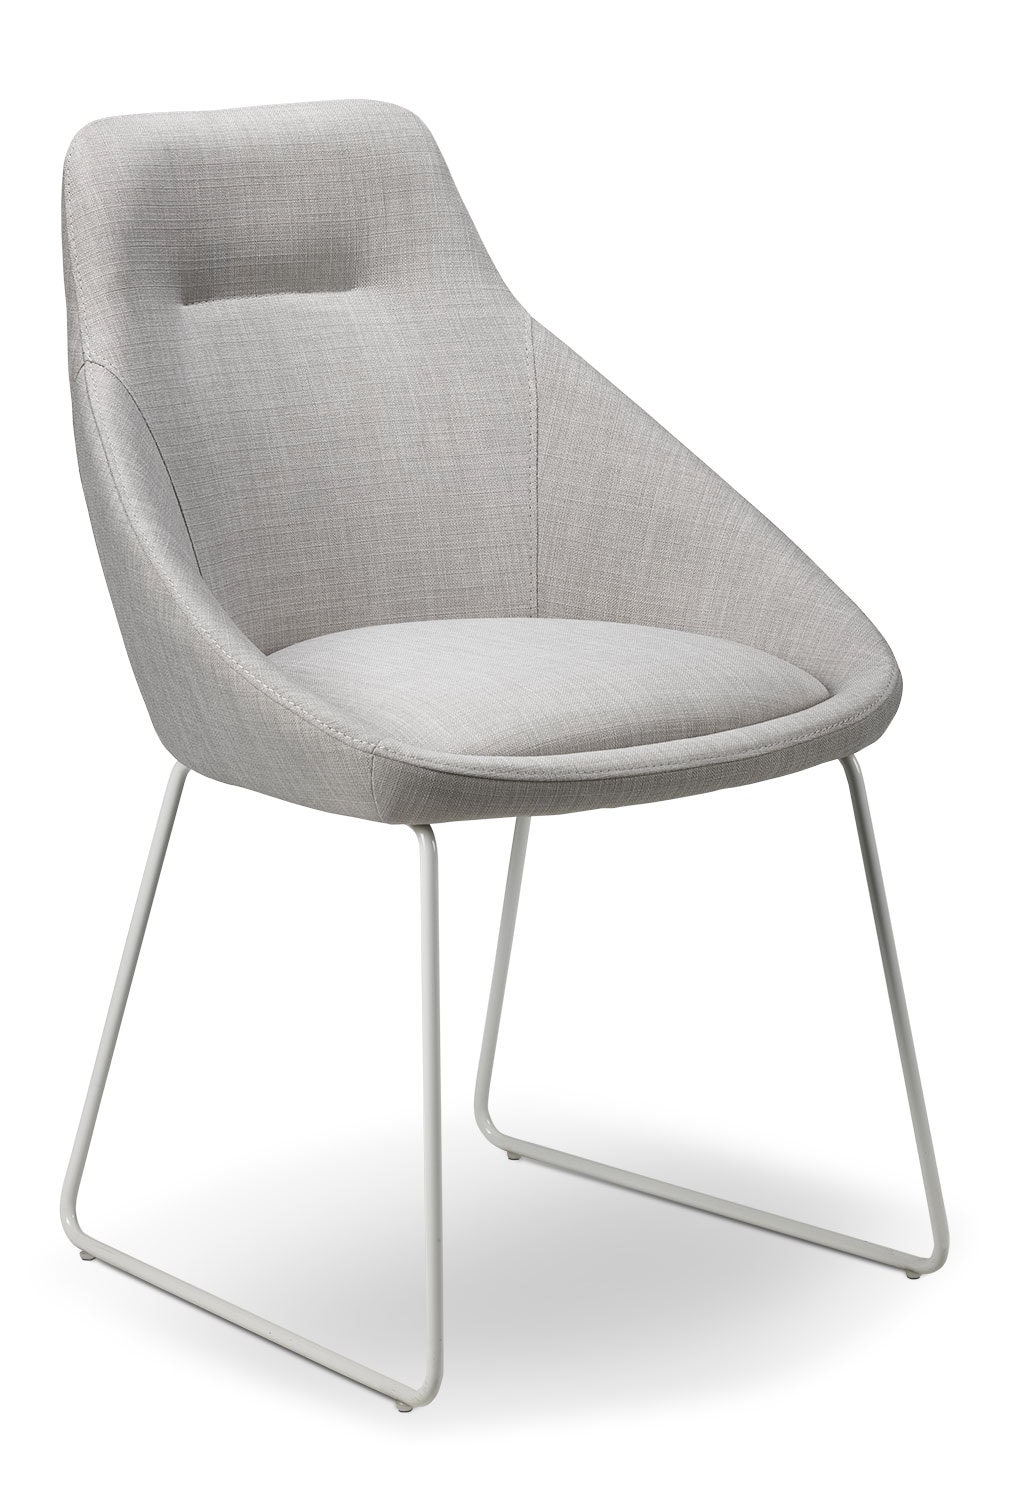 Casual Dining Room Furniture - Sunshine Chair - Grey